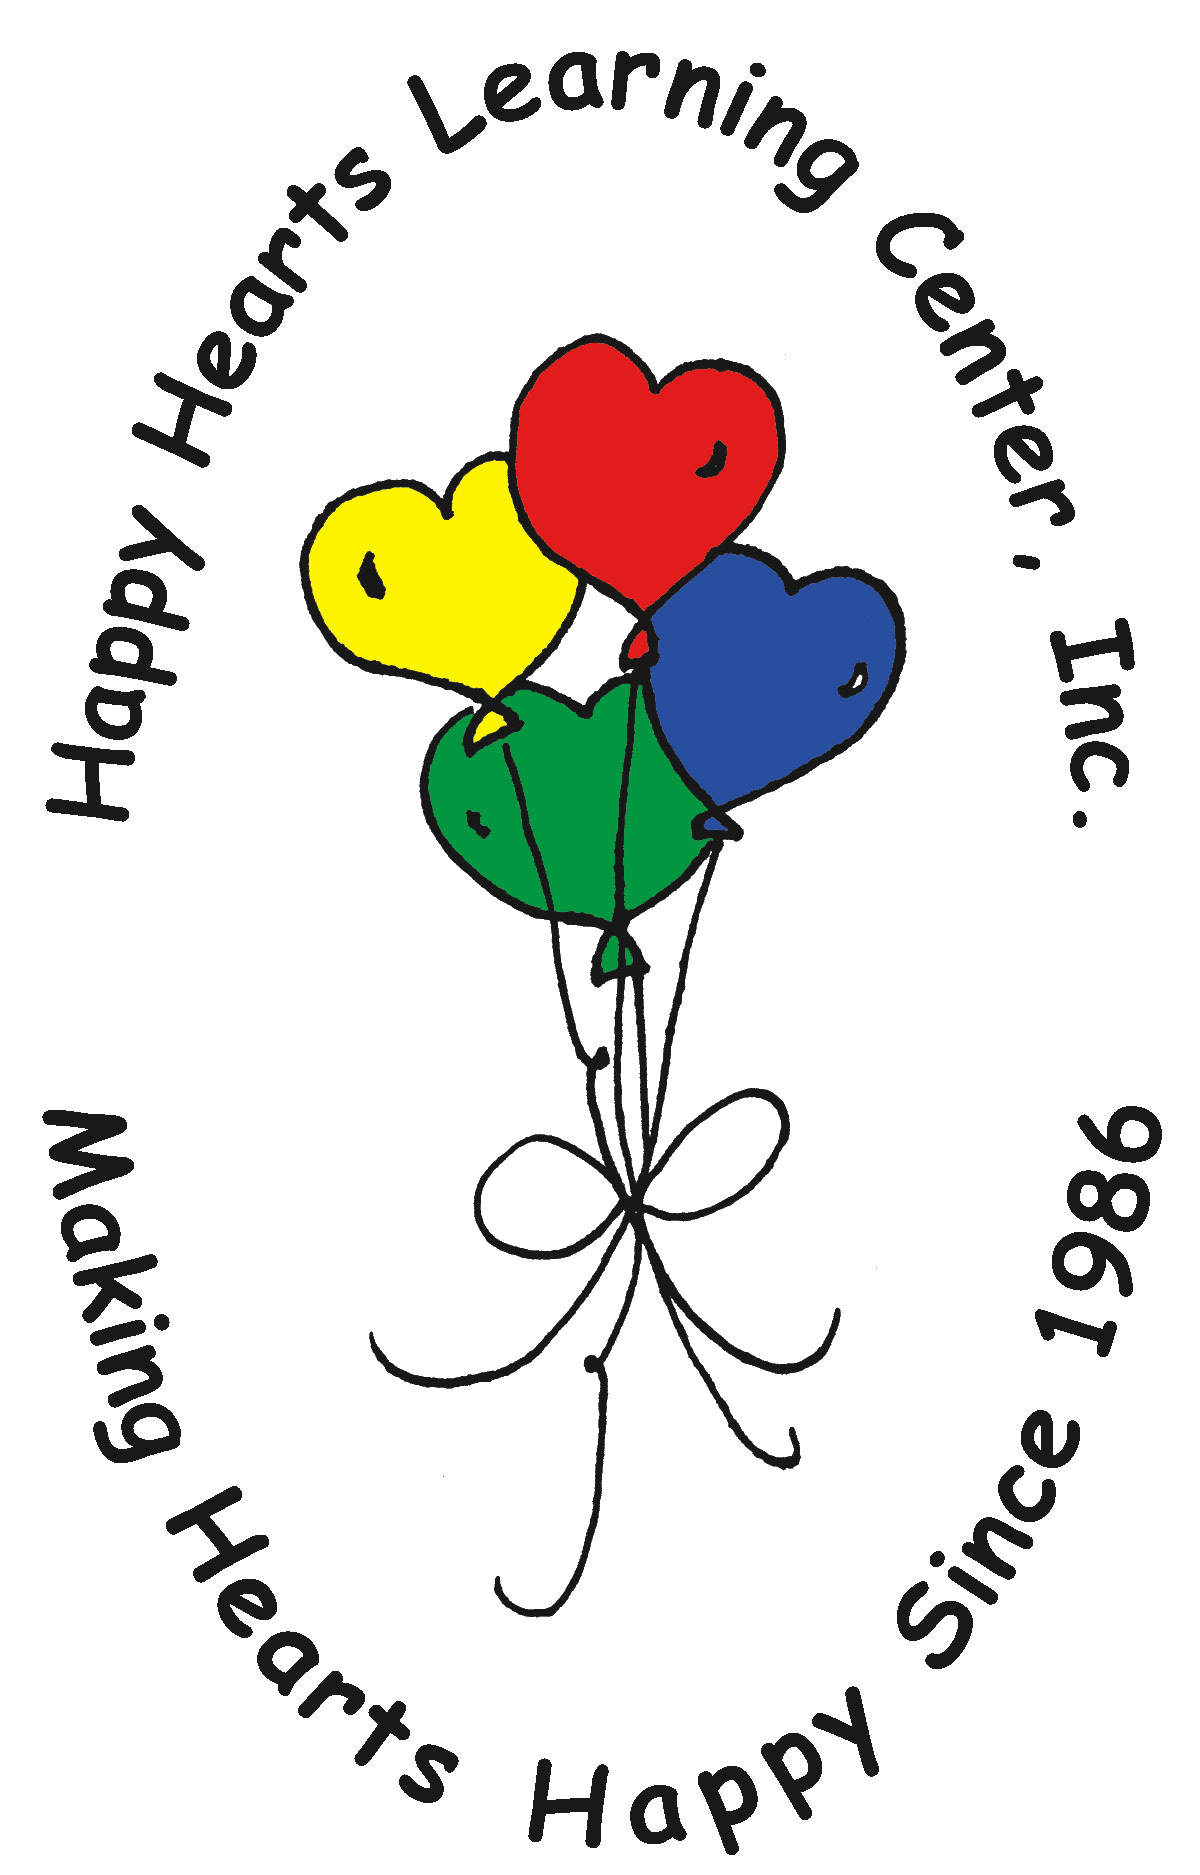 Happy Hearts Learning Center Logo